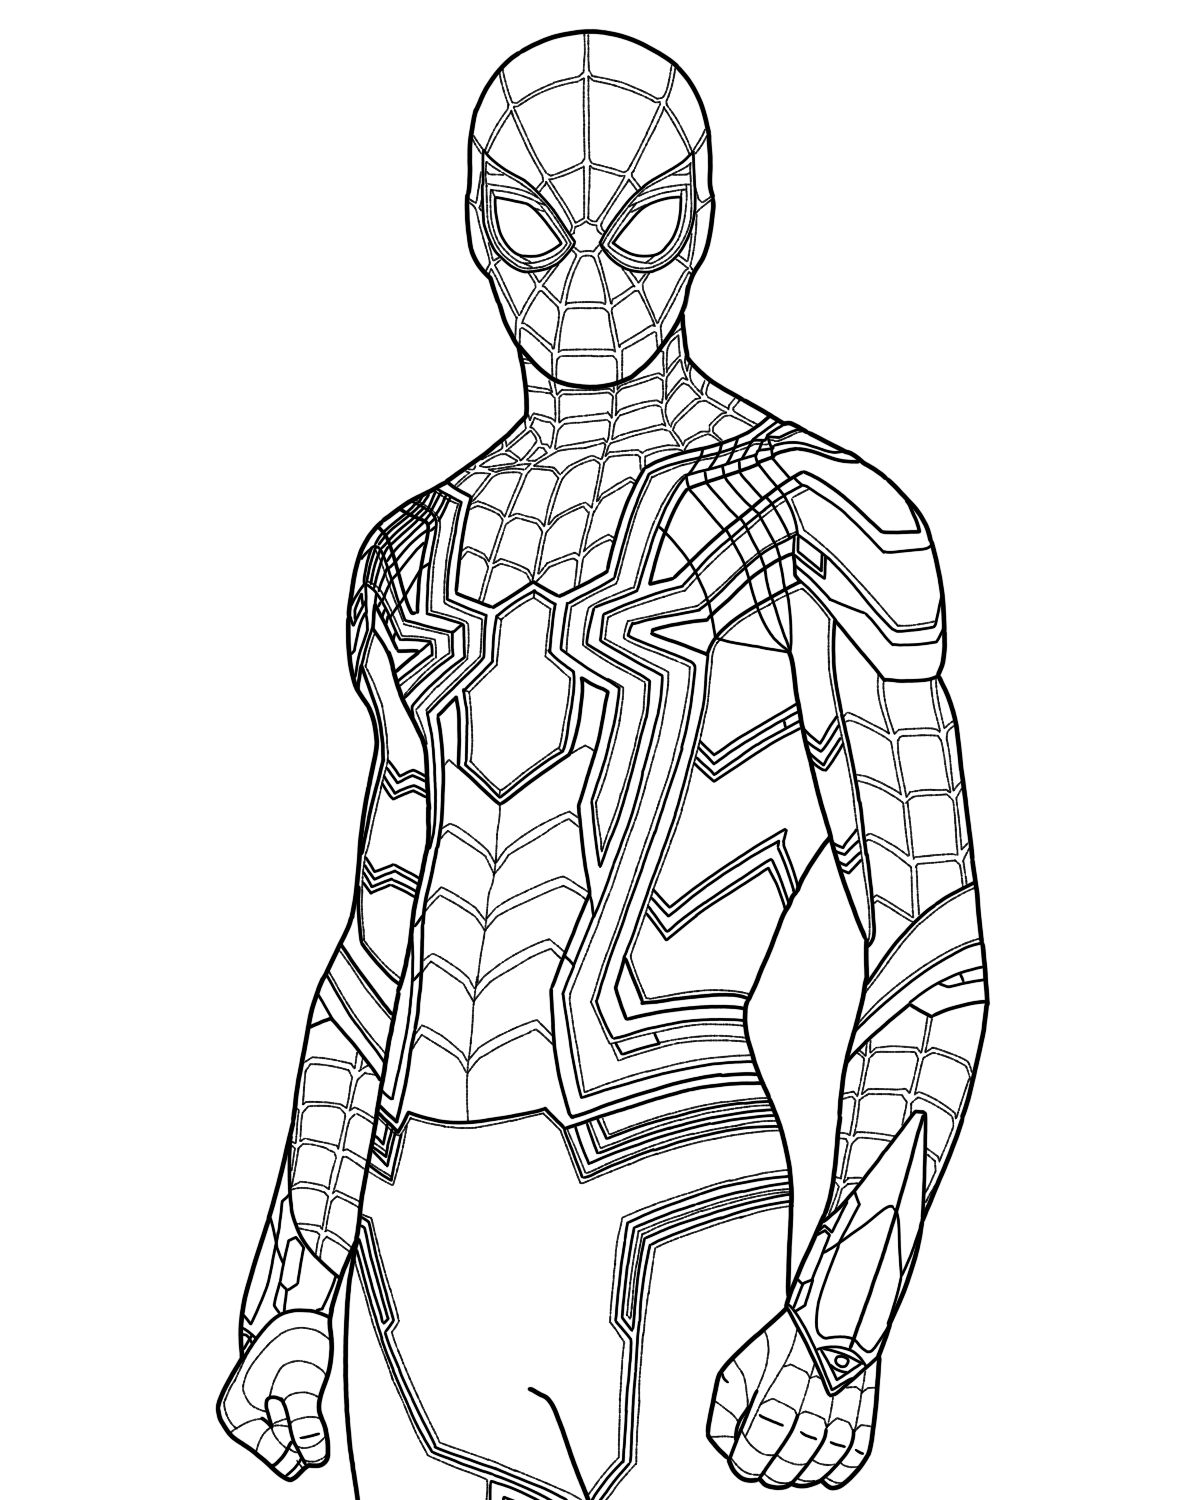 spider man stealth suit coloring page spider man superhero coloring pages coloring stealth spider man suit page